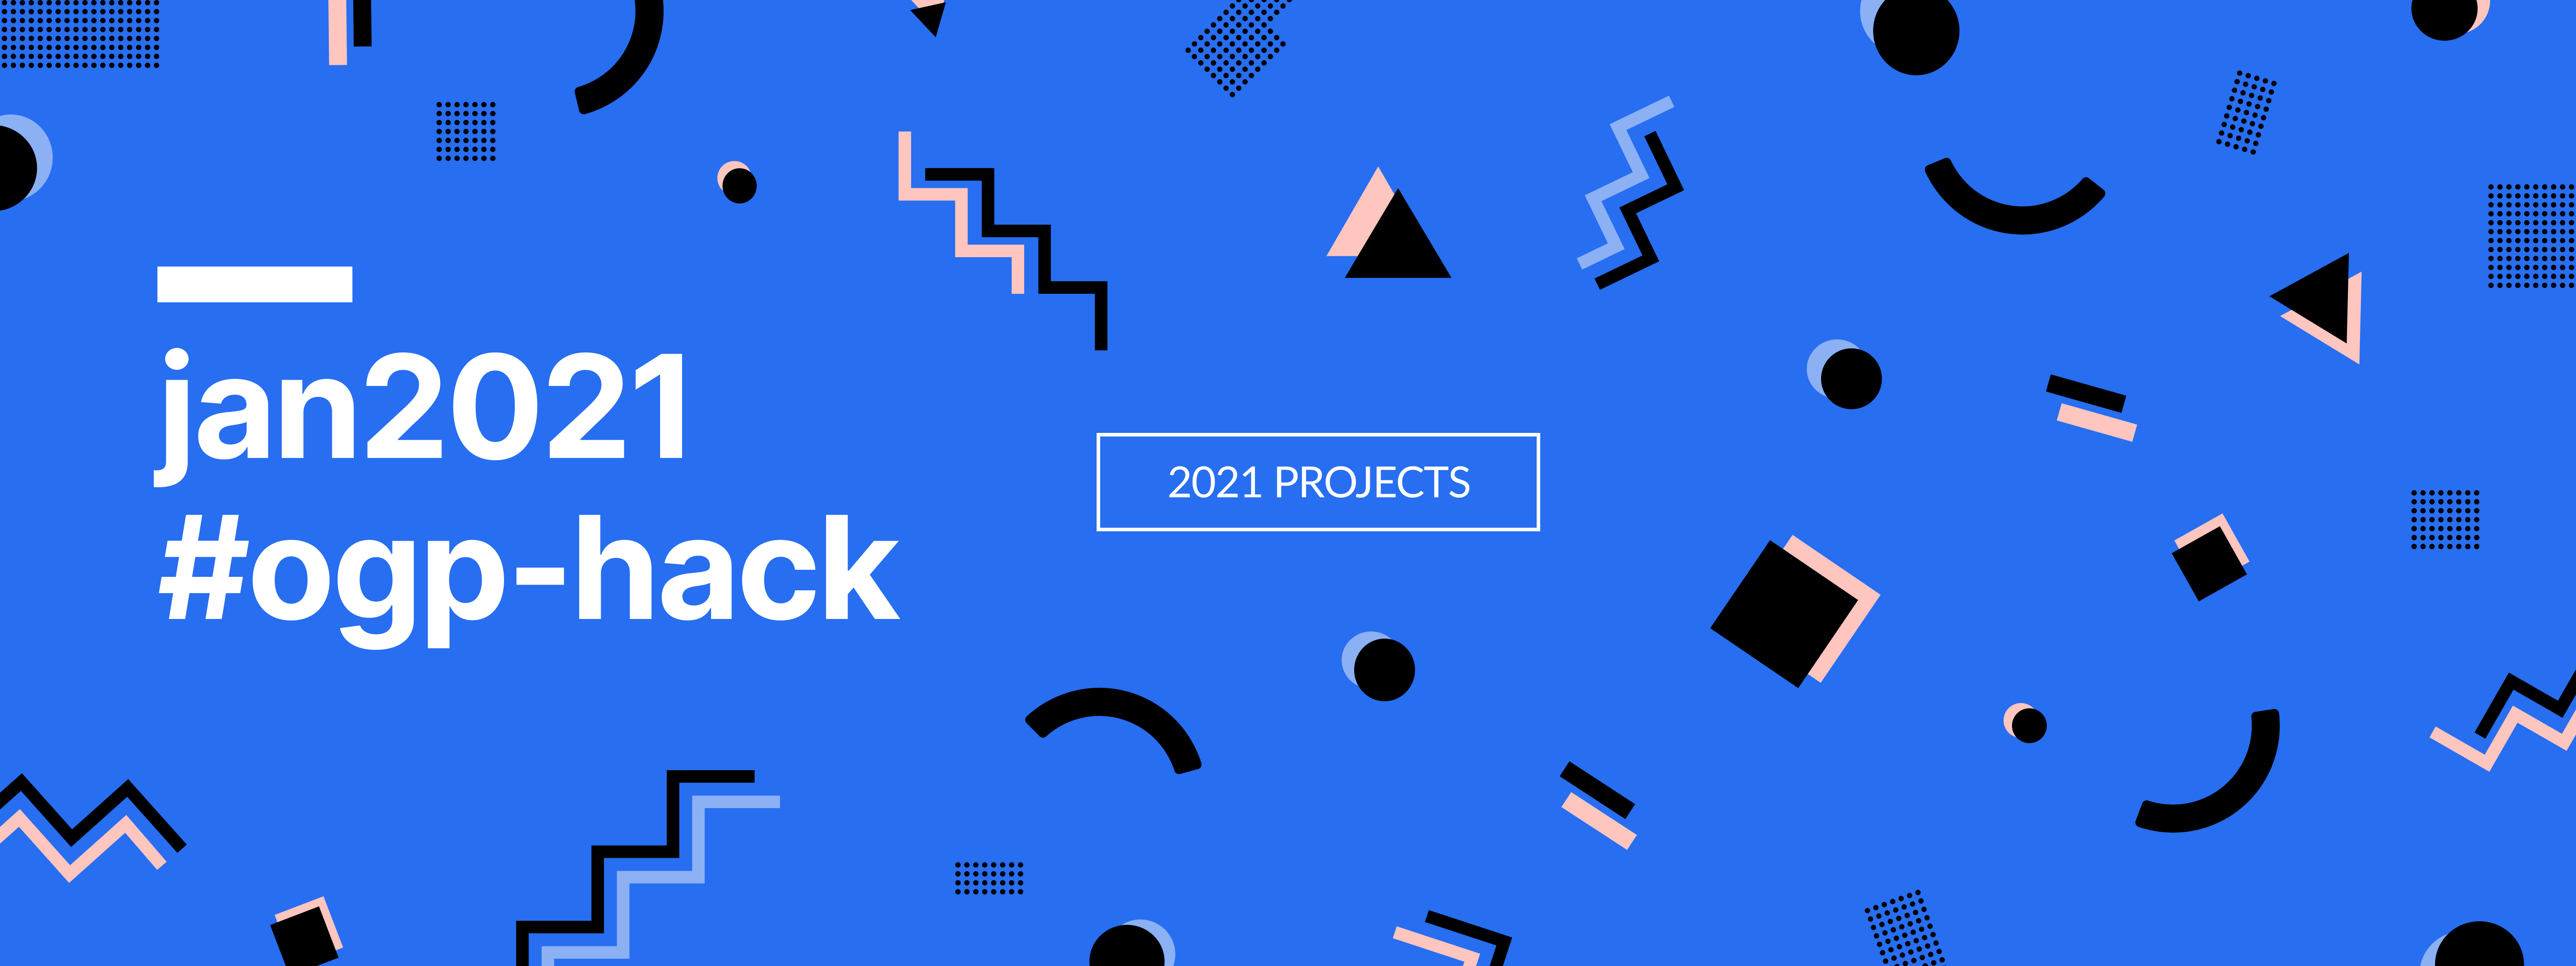 2021 Projects Banner